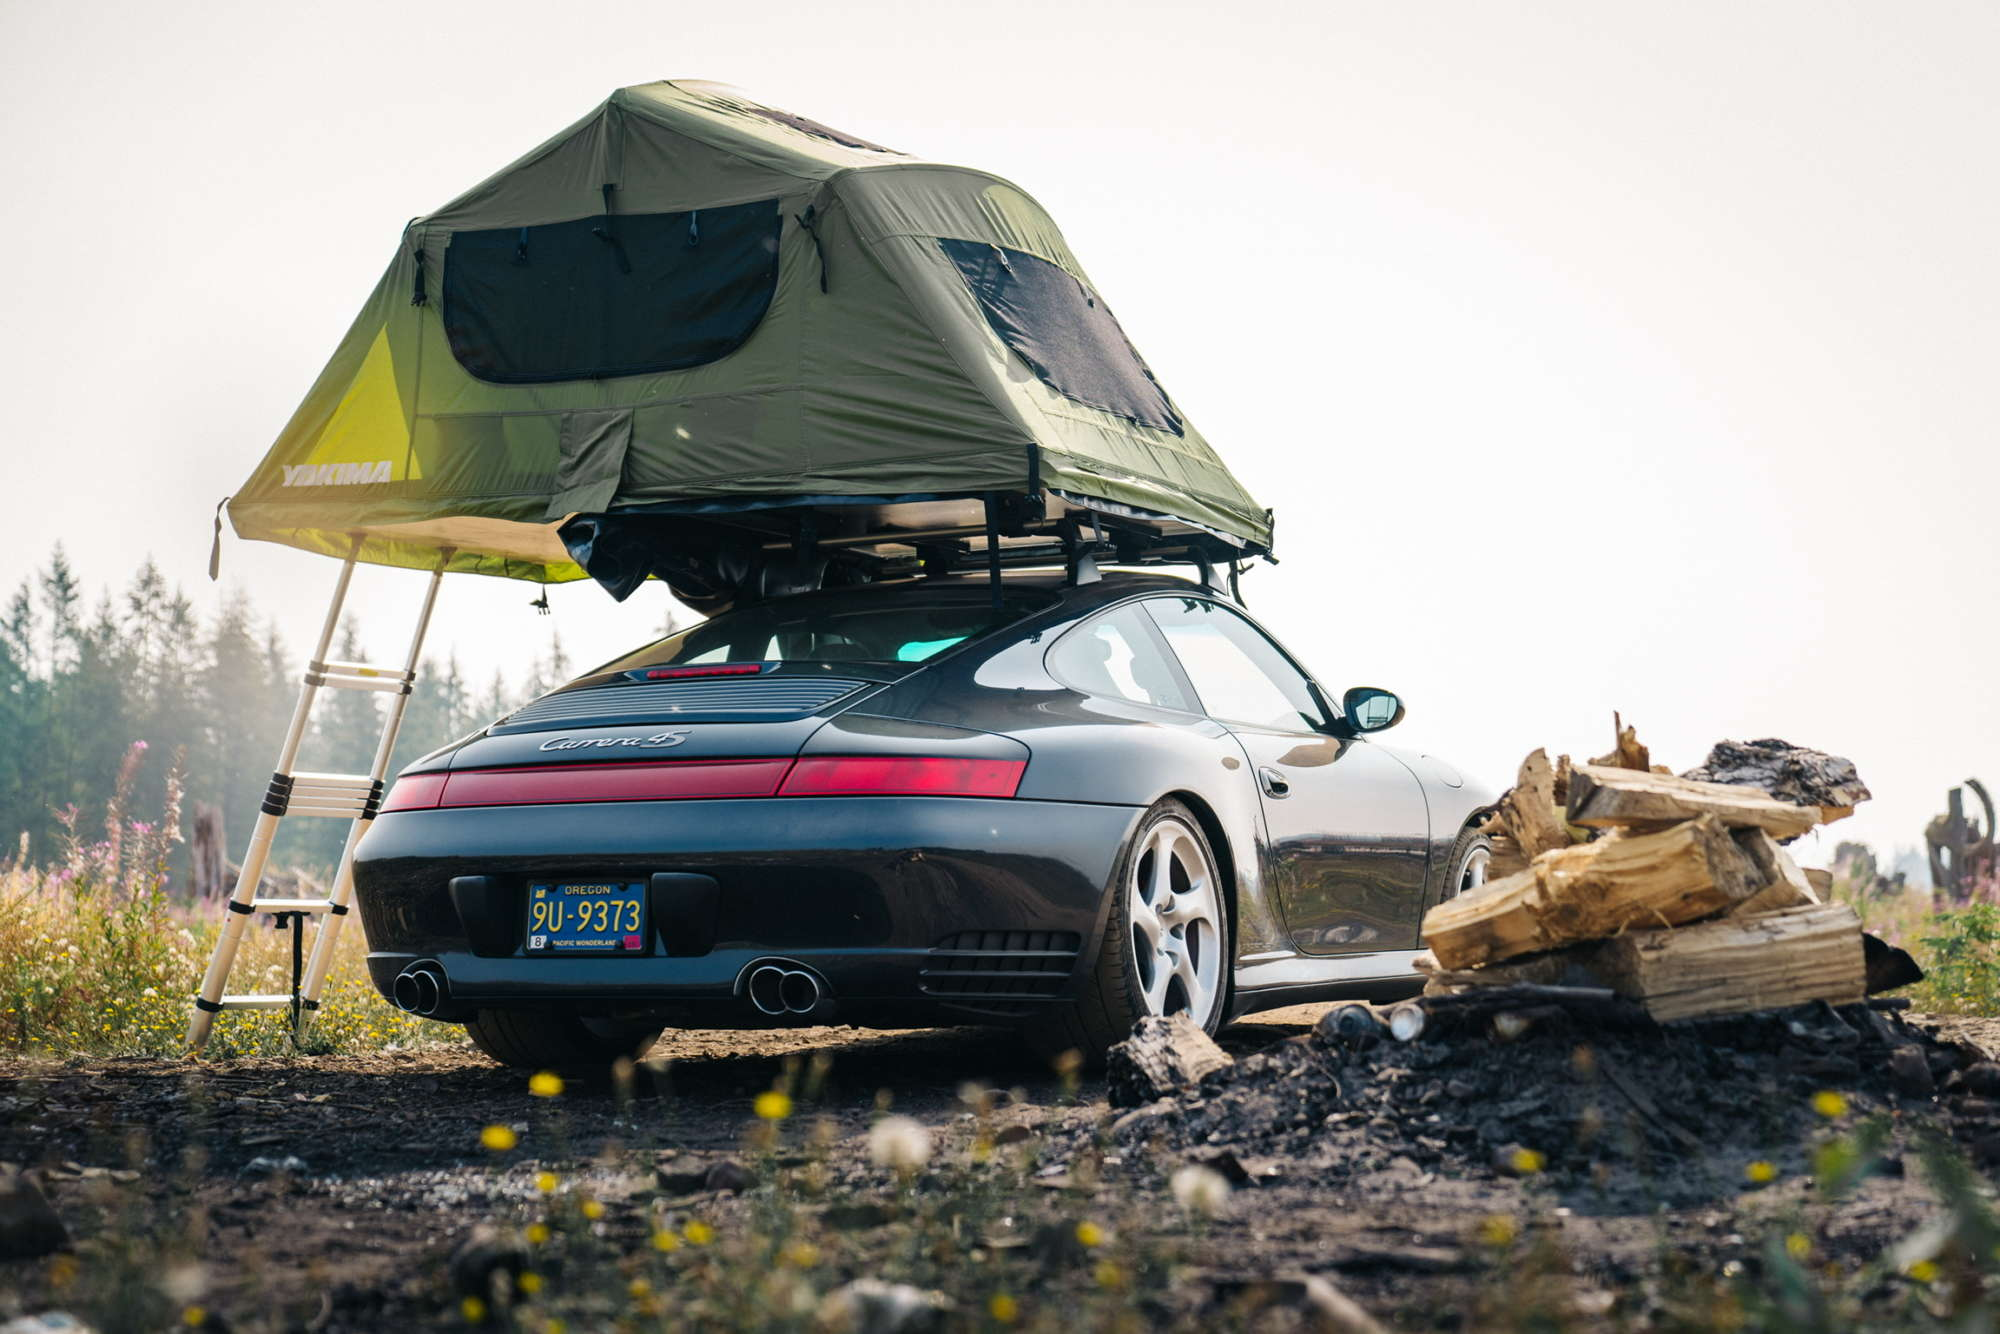 There are no excuses. Get out and do a Porsche 911 road trip!